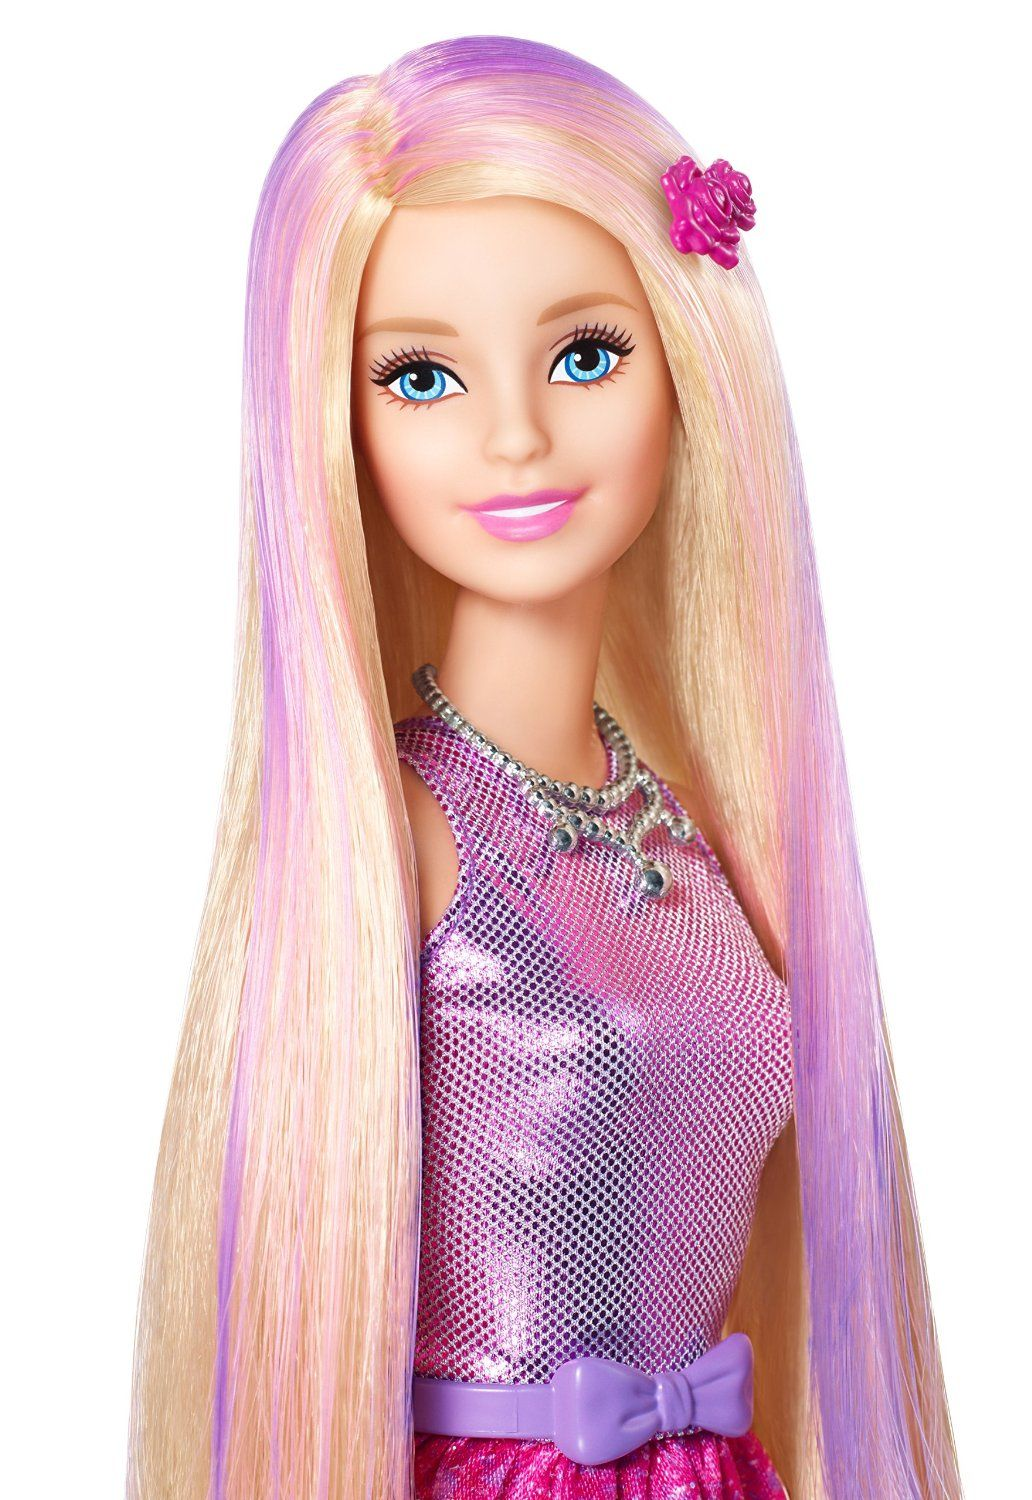 Barbie Hair Color And Style Doll Barbie World Pinterest